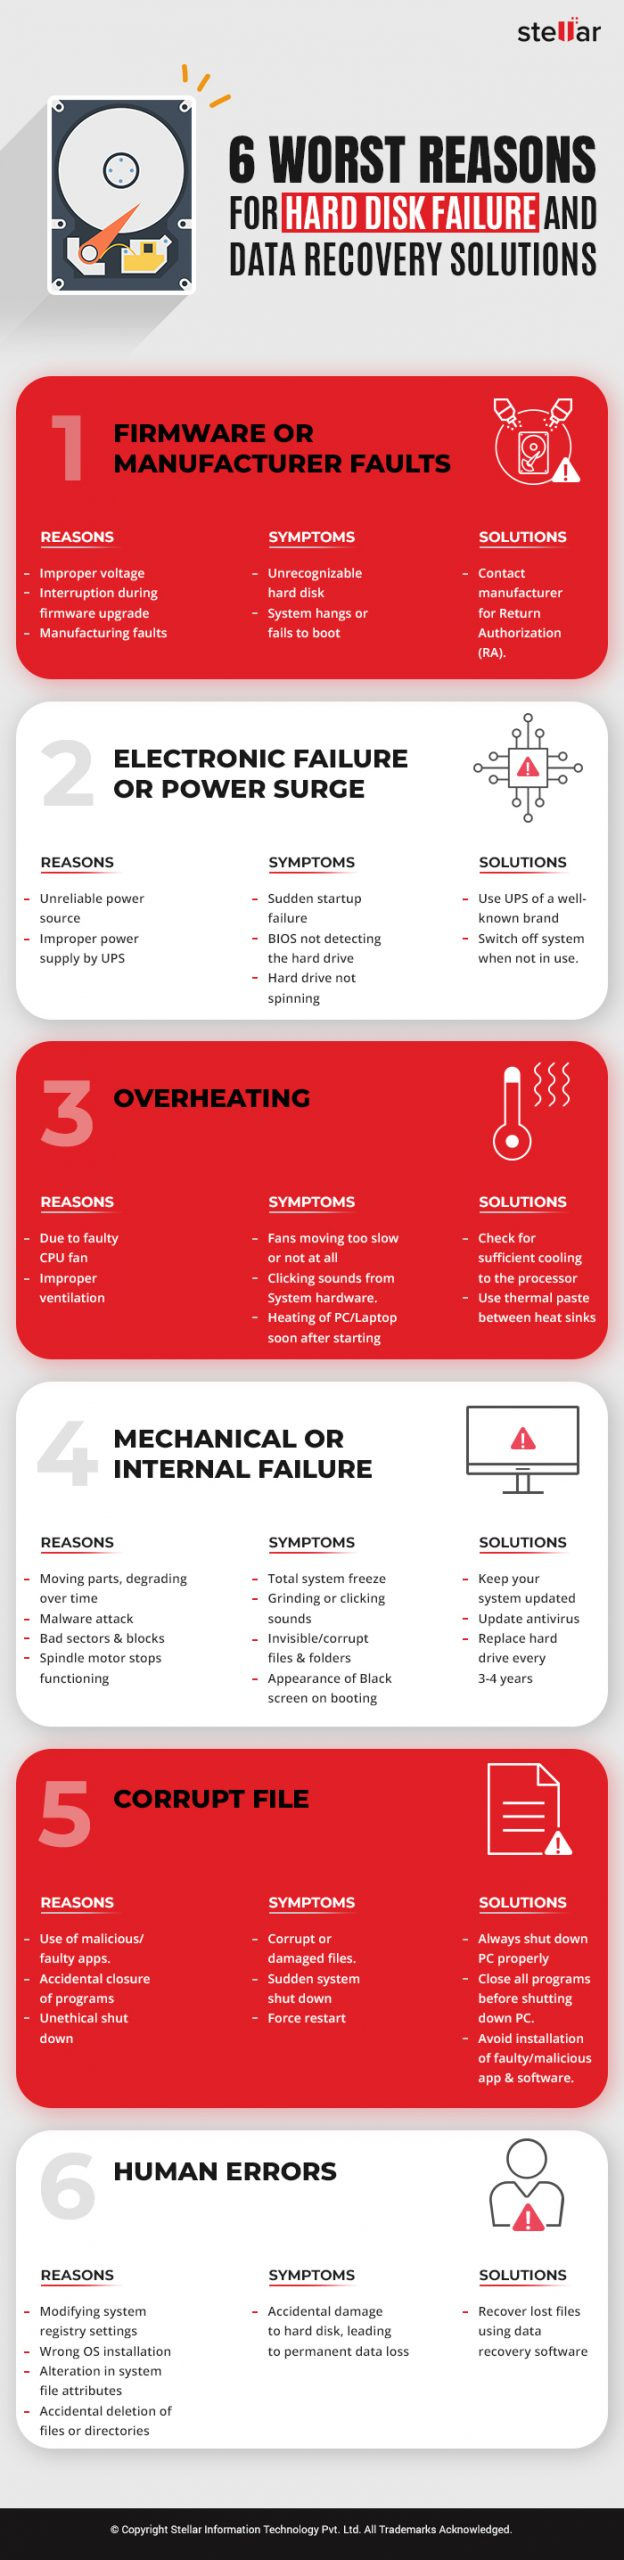 Info-graphic for 6 worst reasons for hard disk failure with solutions.